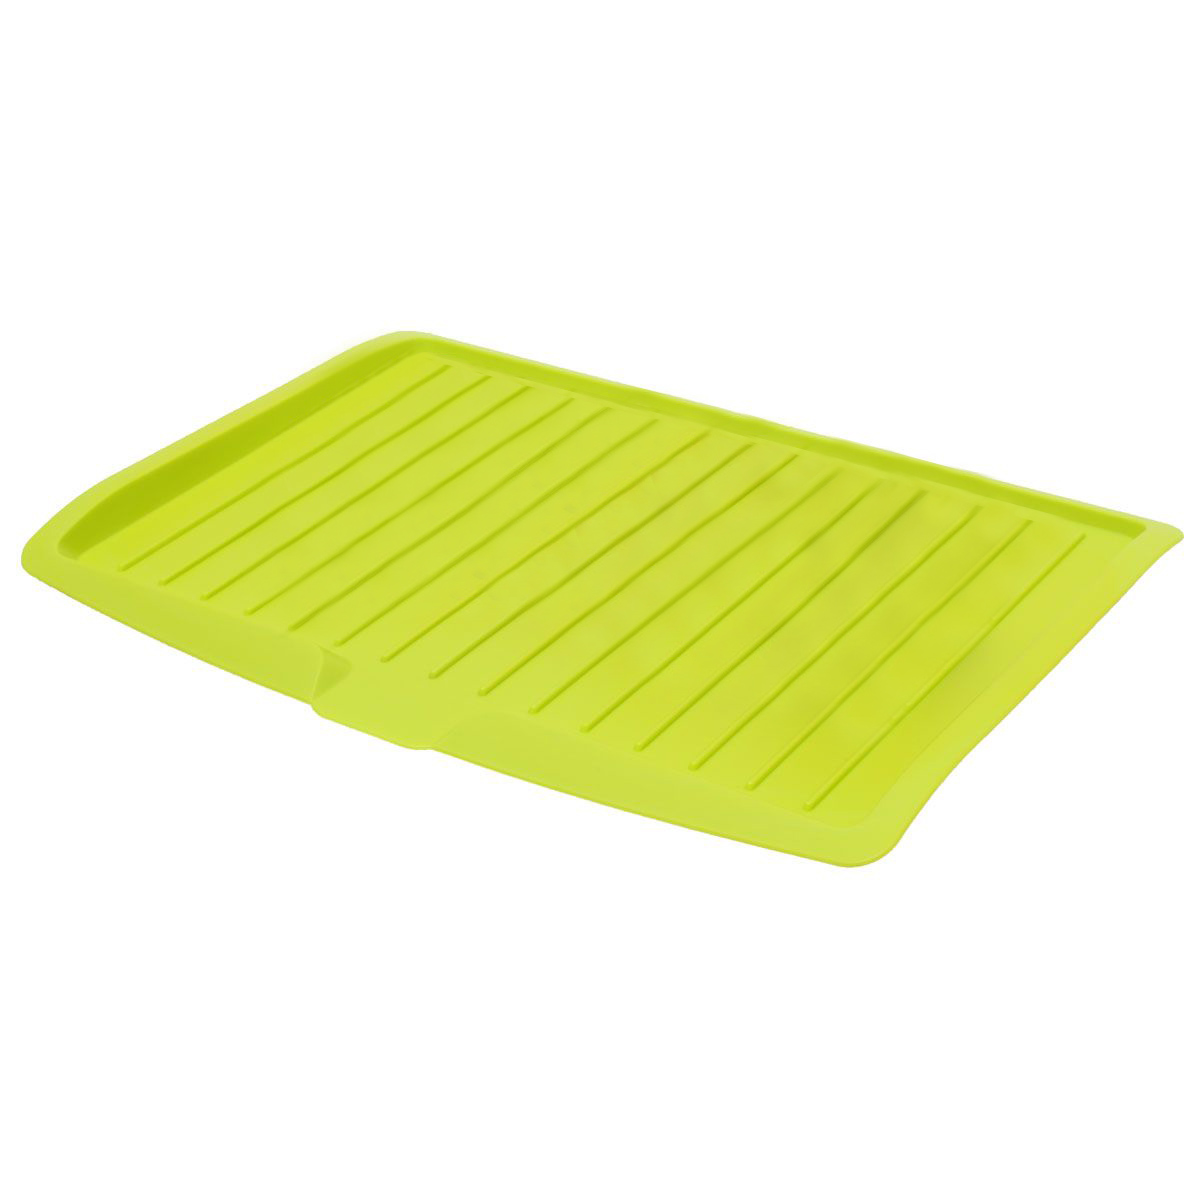 Plastic Dish Drainer Drip Tray Plate Cutlery Rack Kitchen Sink Holder Large Green In Storage Trays From Home Garden On Aliexpress Alibaba Group